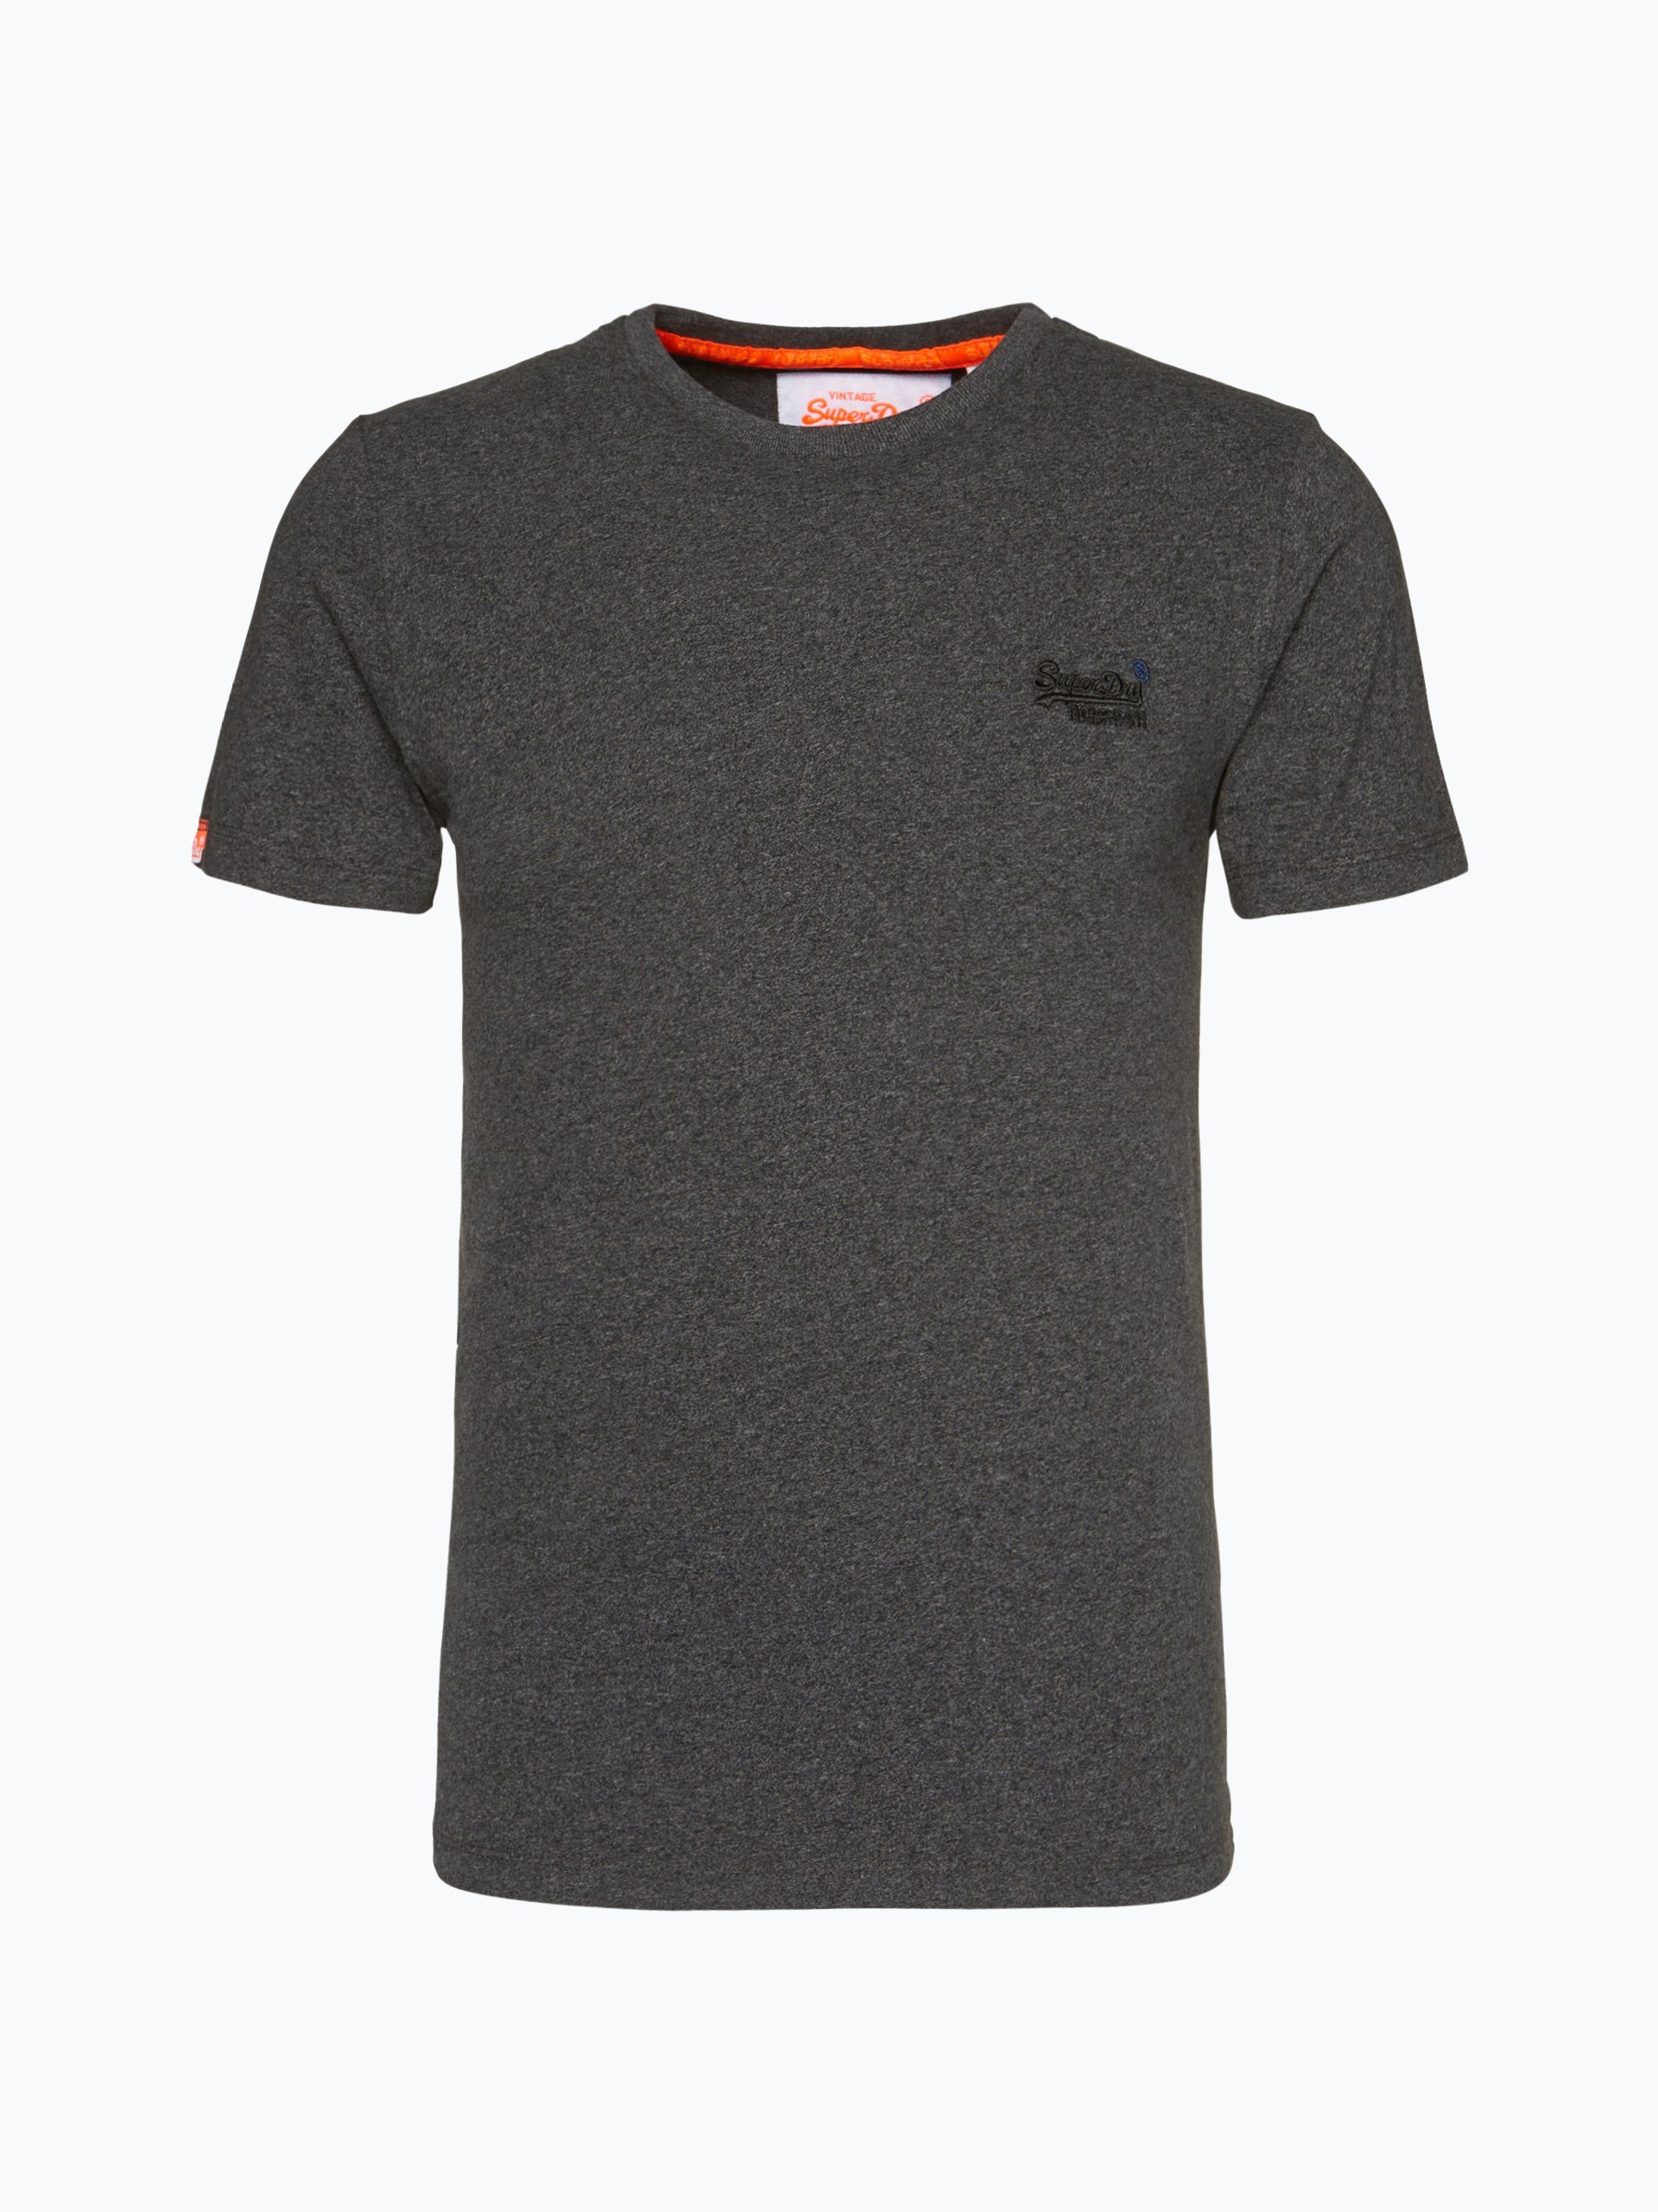 superdry herren t shirt anthrazit gemustert online kaufen. Black Bedroom Furniture Sets. Home Design Ideas